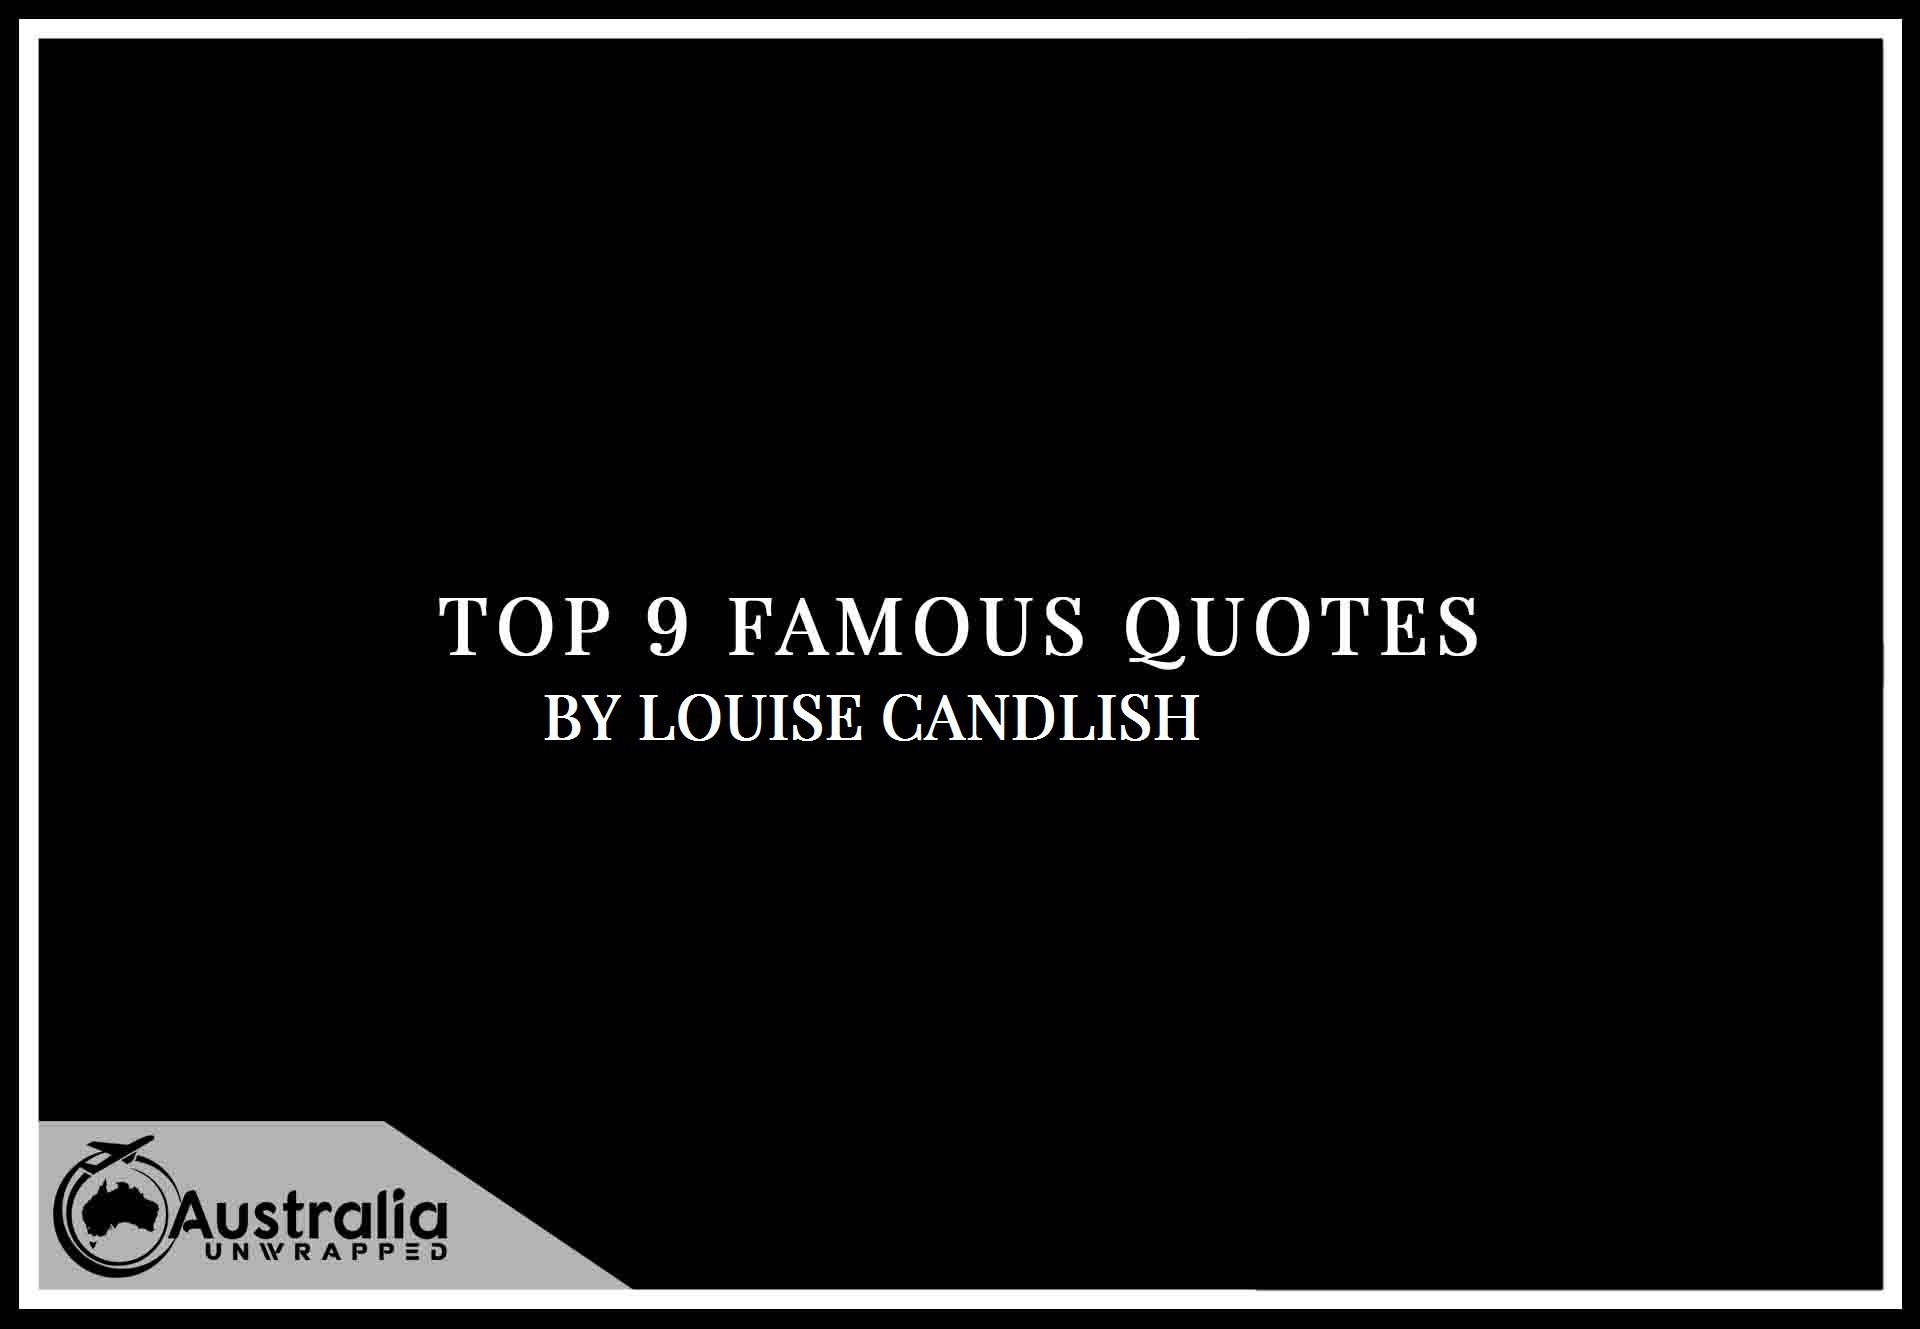 Louise Candlish's Top 9 Popular and Famous Quotes